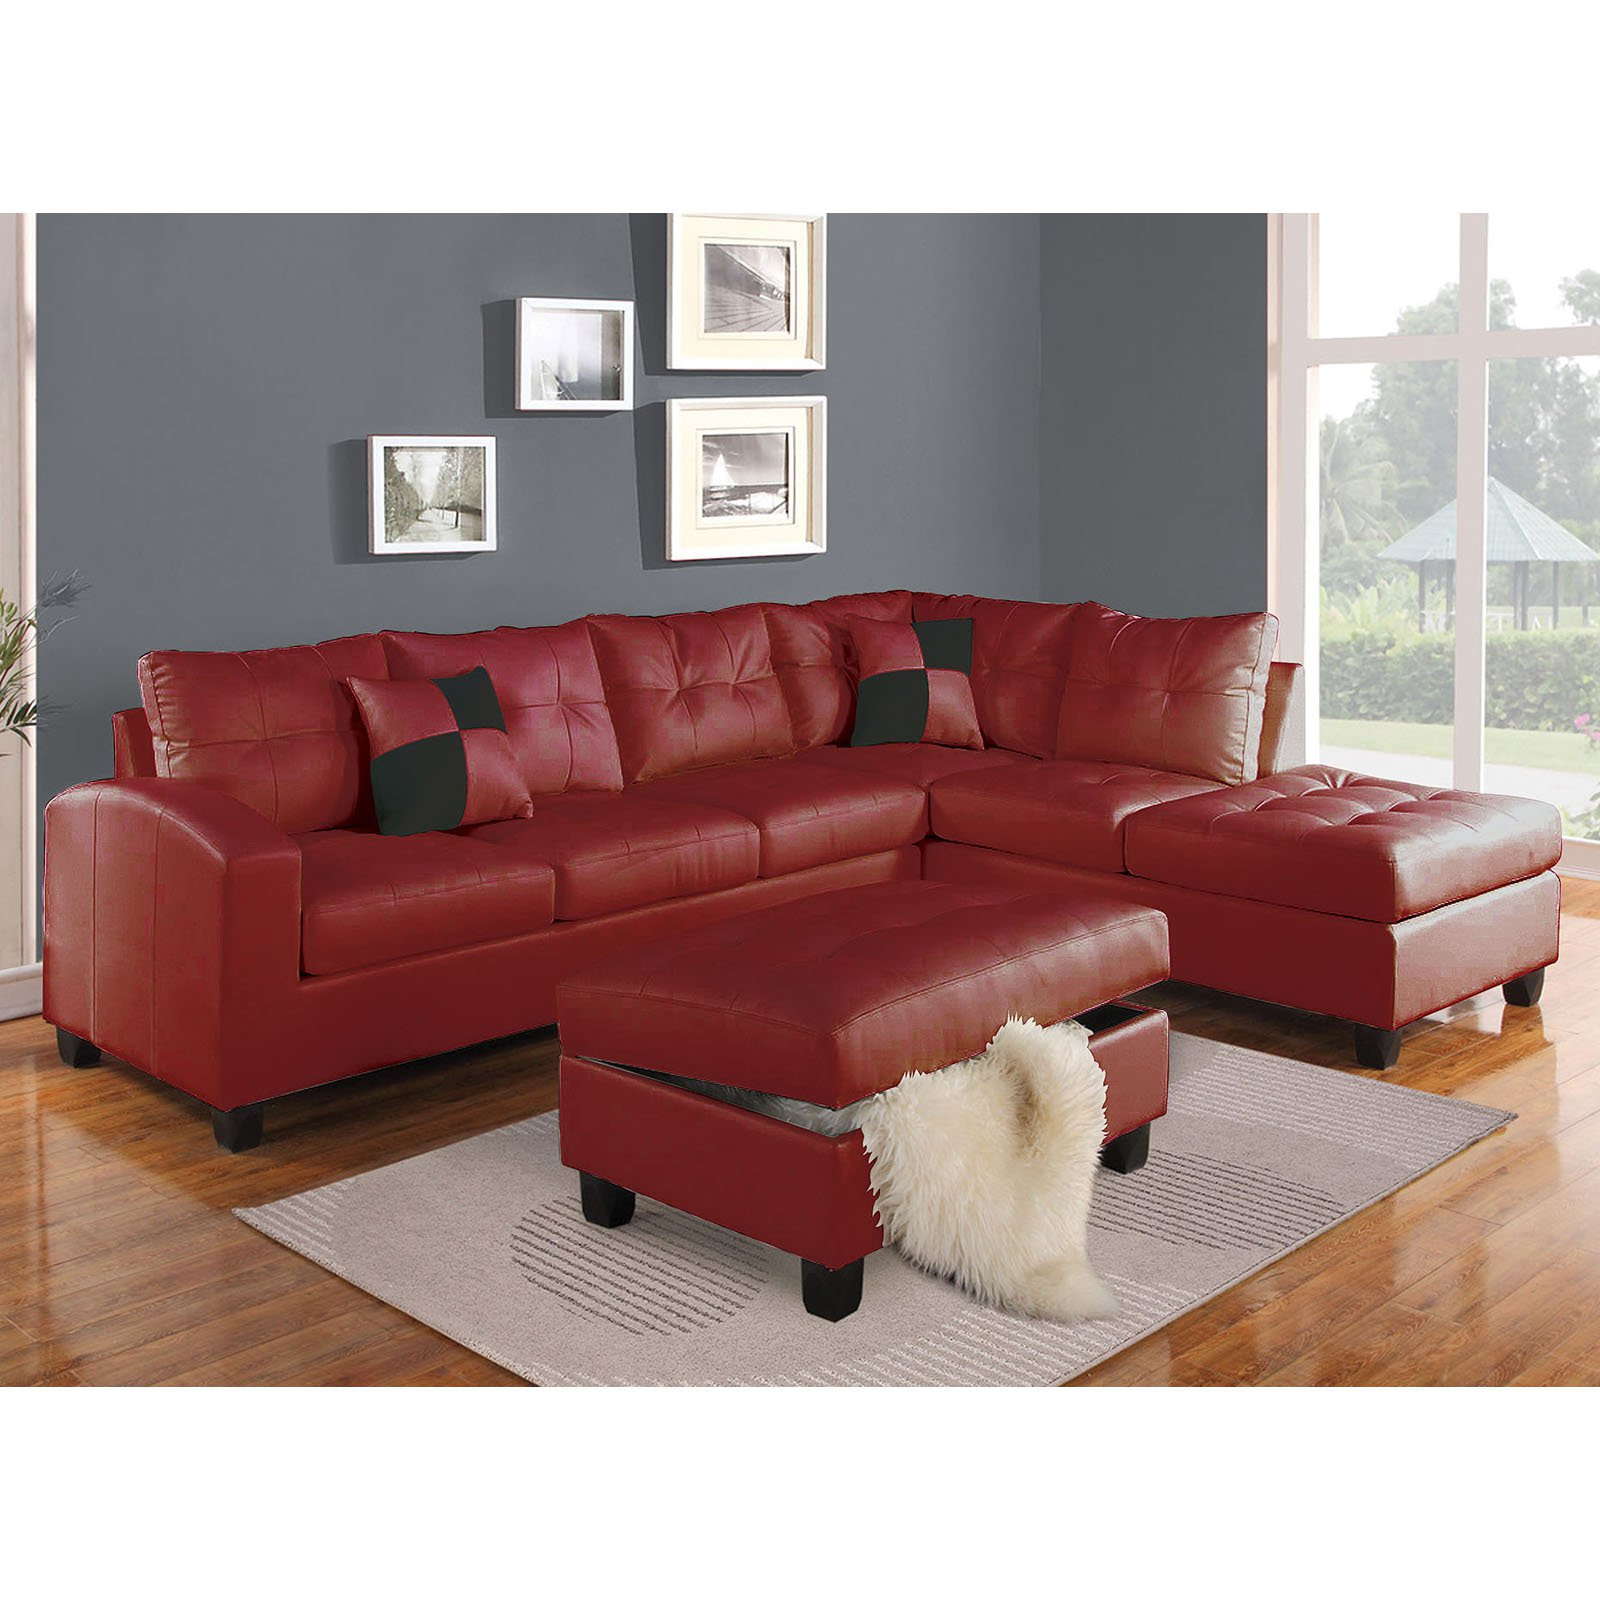 Acme Furniture Kiva Sectional Sofa with Reversible Pillows